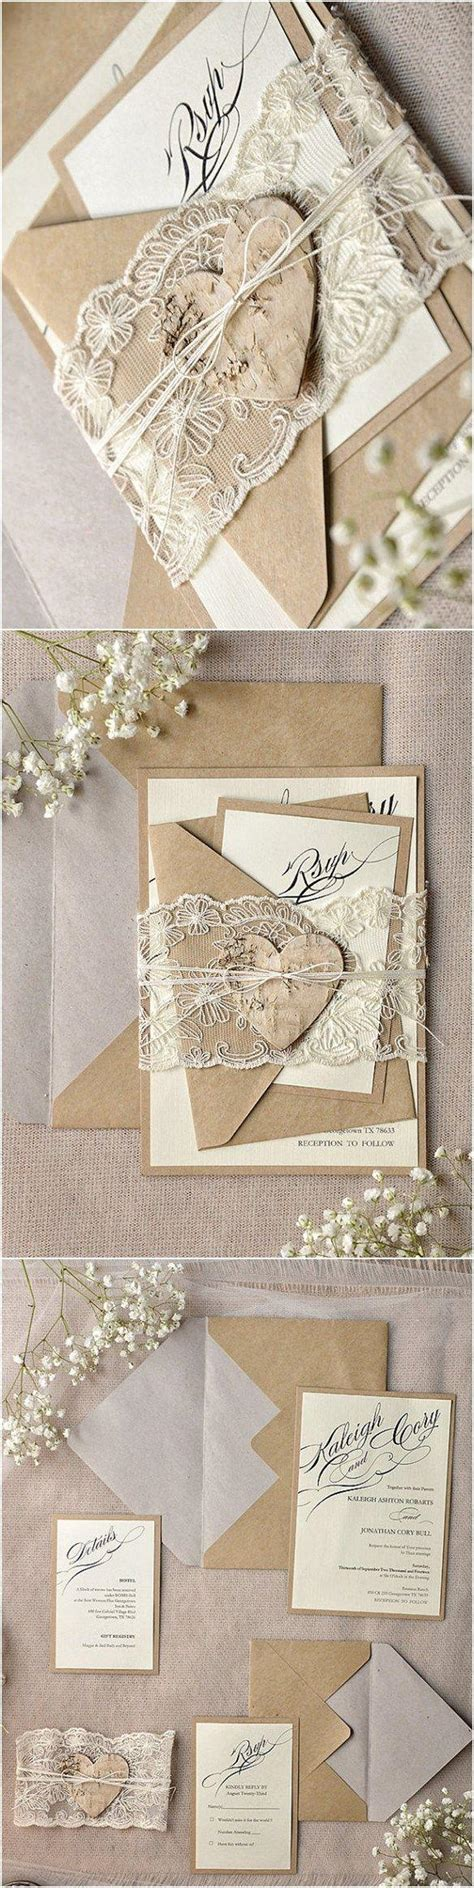 rustic calligraphy recycled lace wedding invitation kits 2472384 weddbook